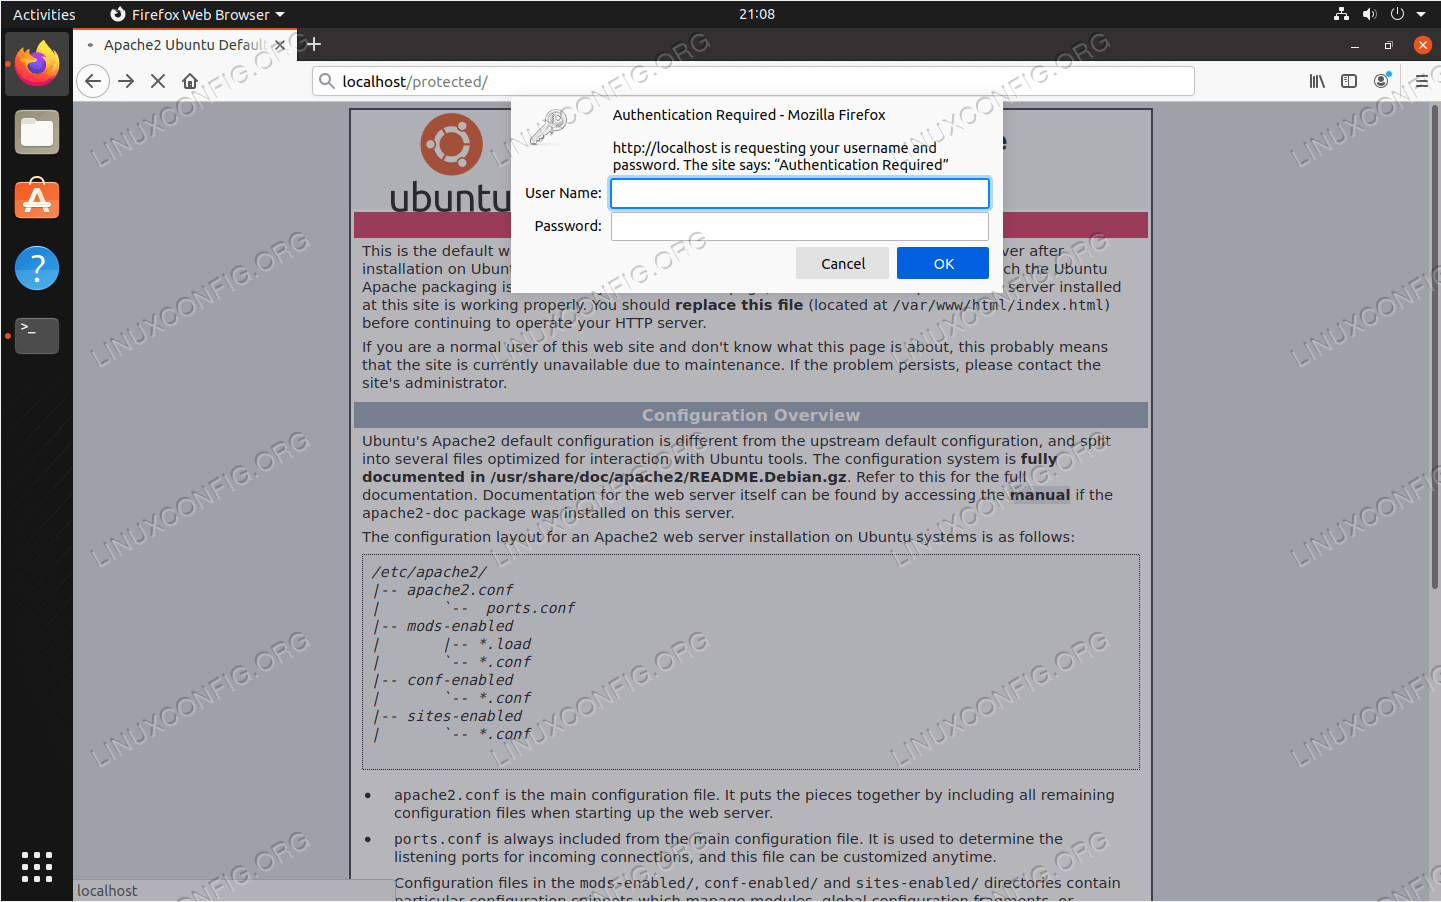 We are prompted for a username and password when trying to access the protected directory